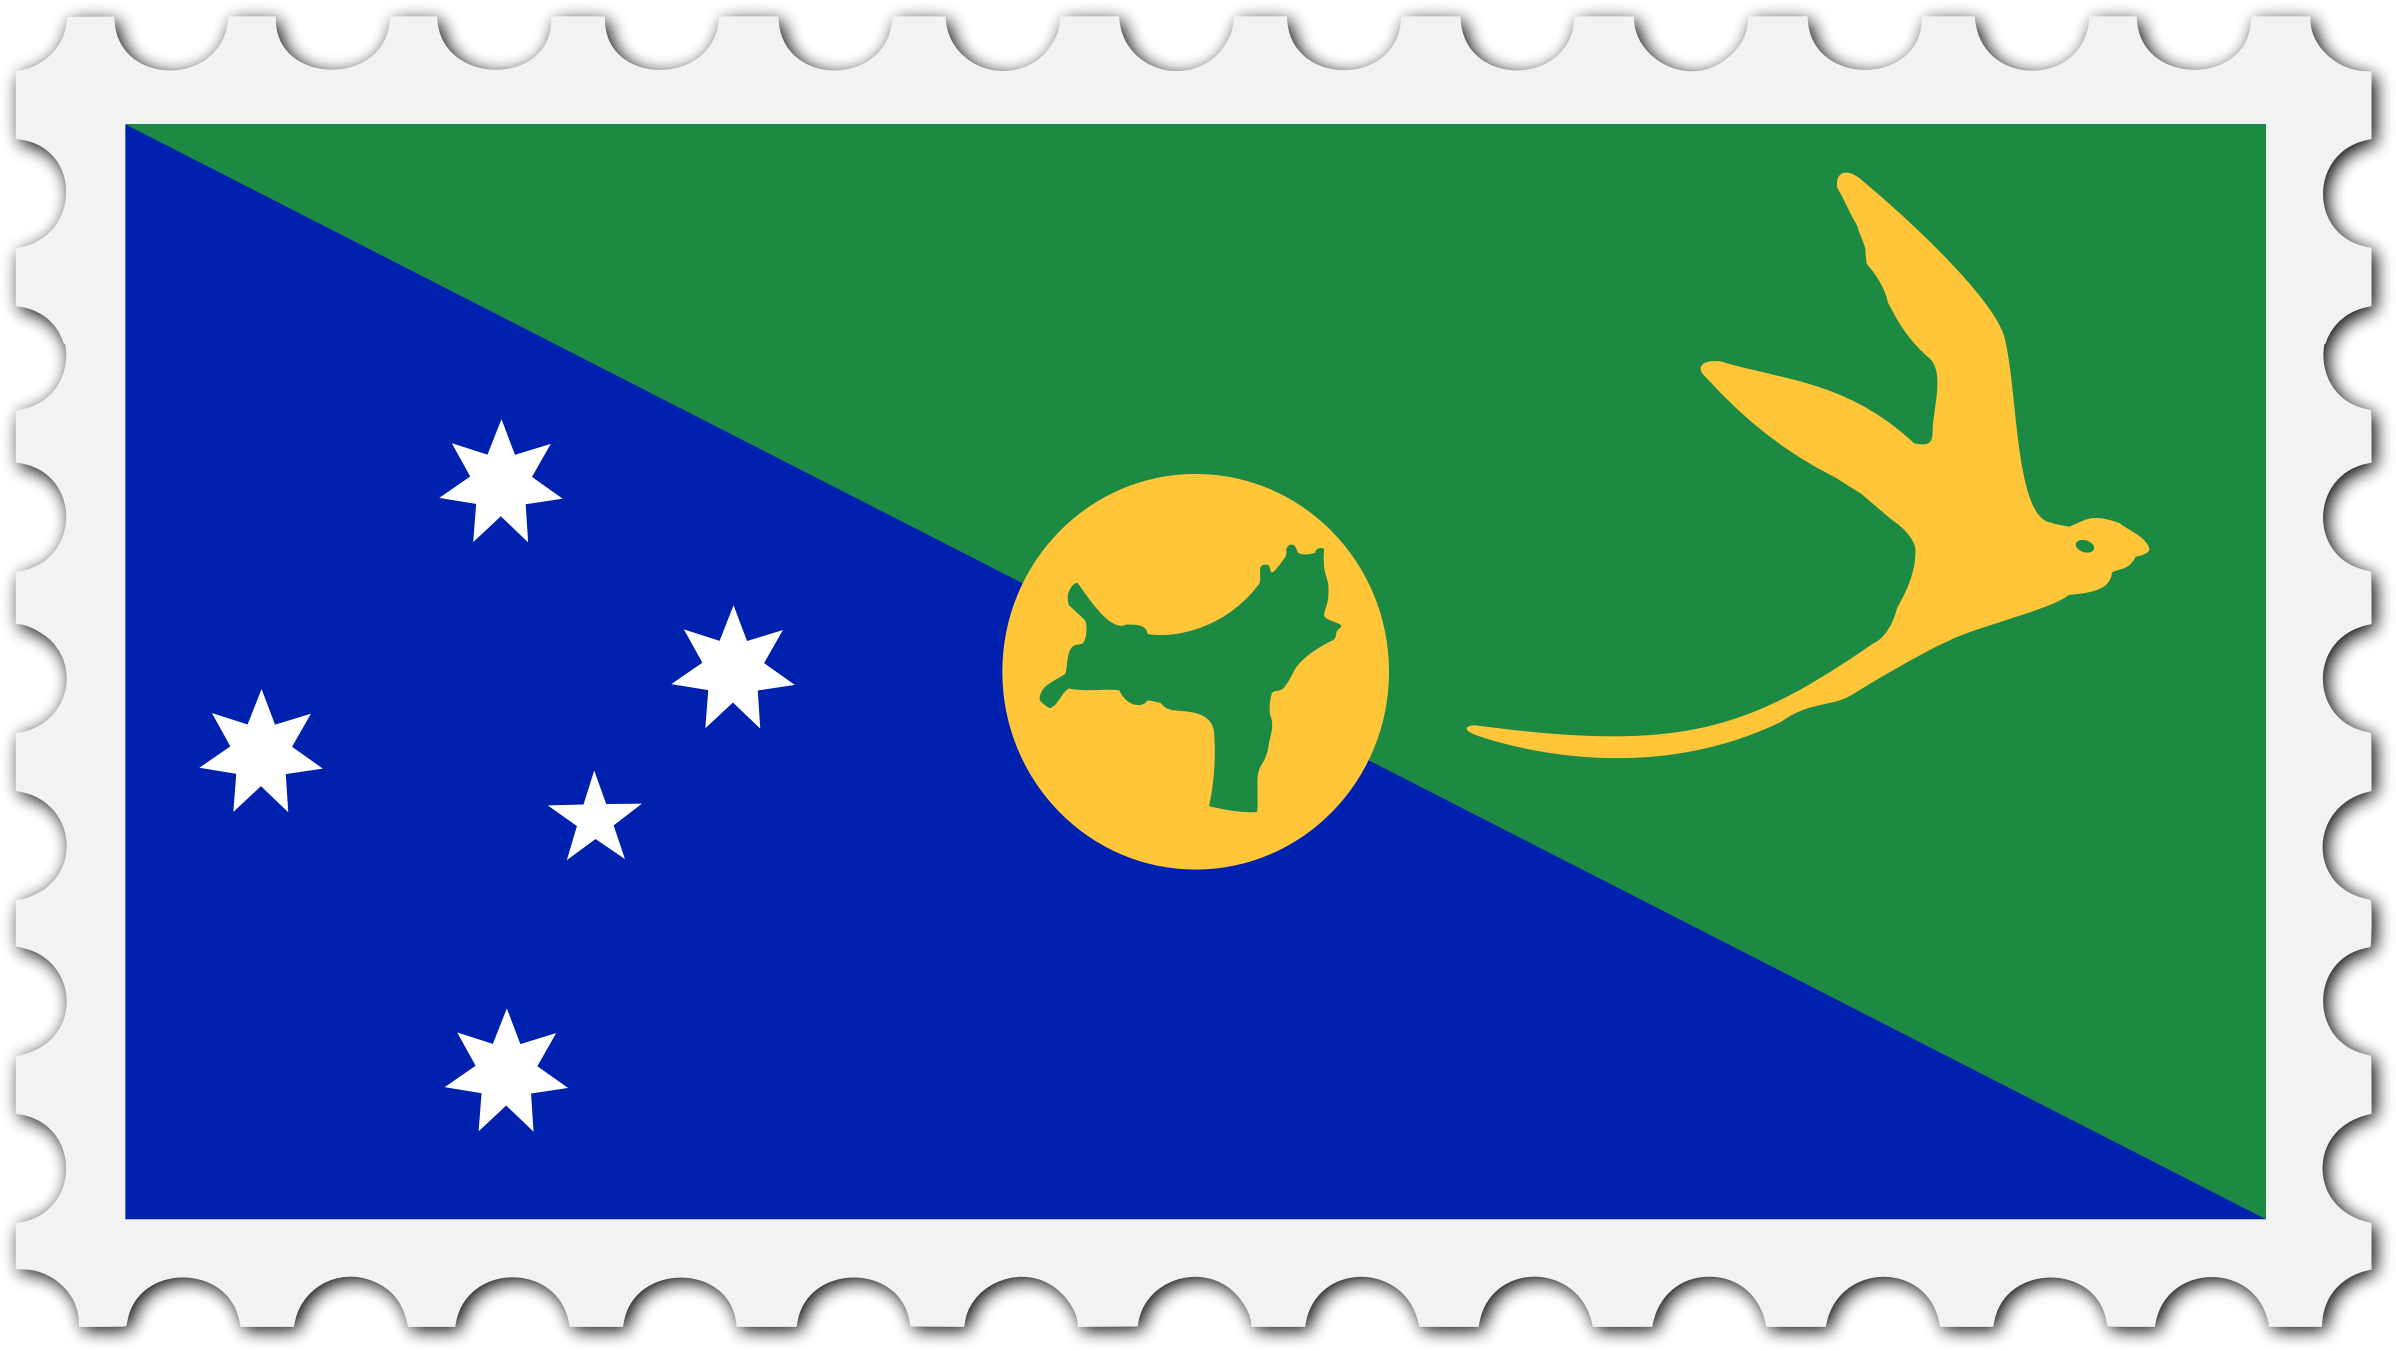 Christmas Island flag stamp by Firkin